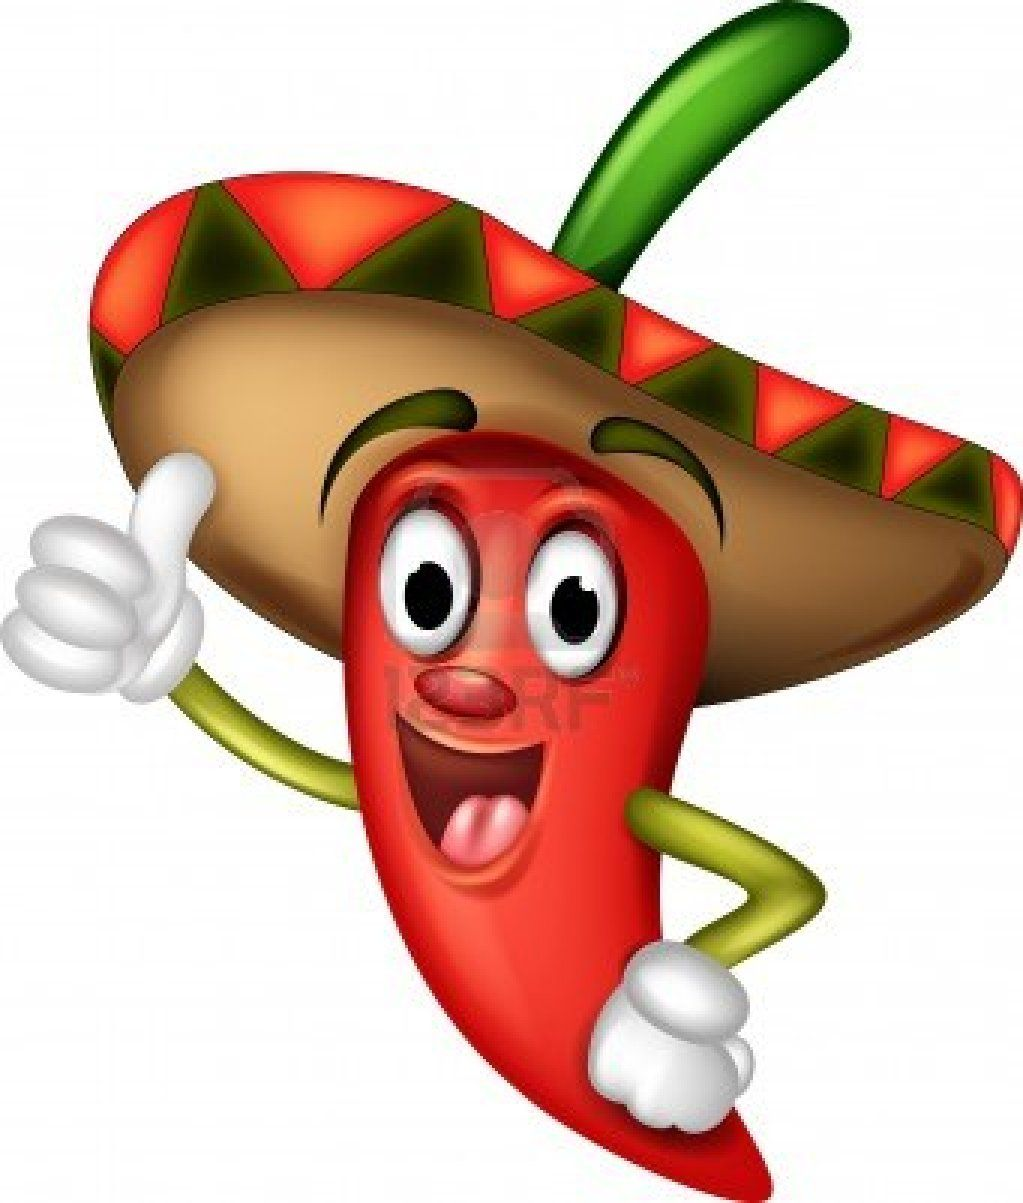 small resolution of chili pepper cartoon thumbs up stock photo chile mexicano mexican party mexican night